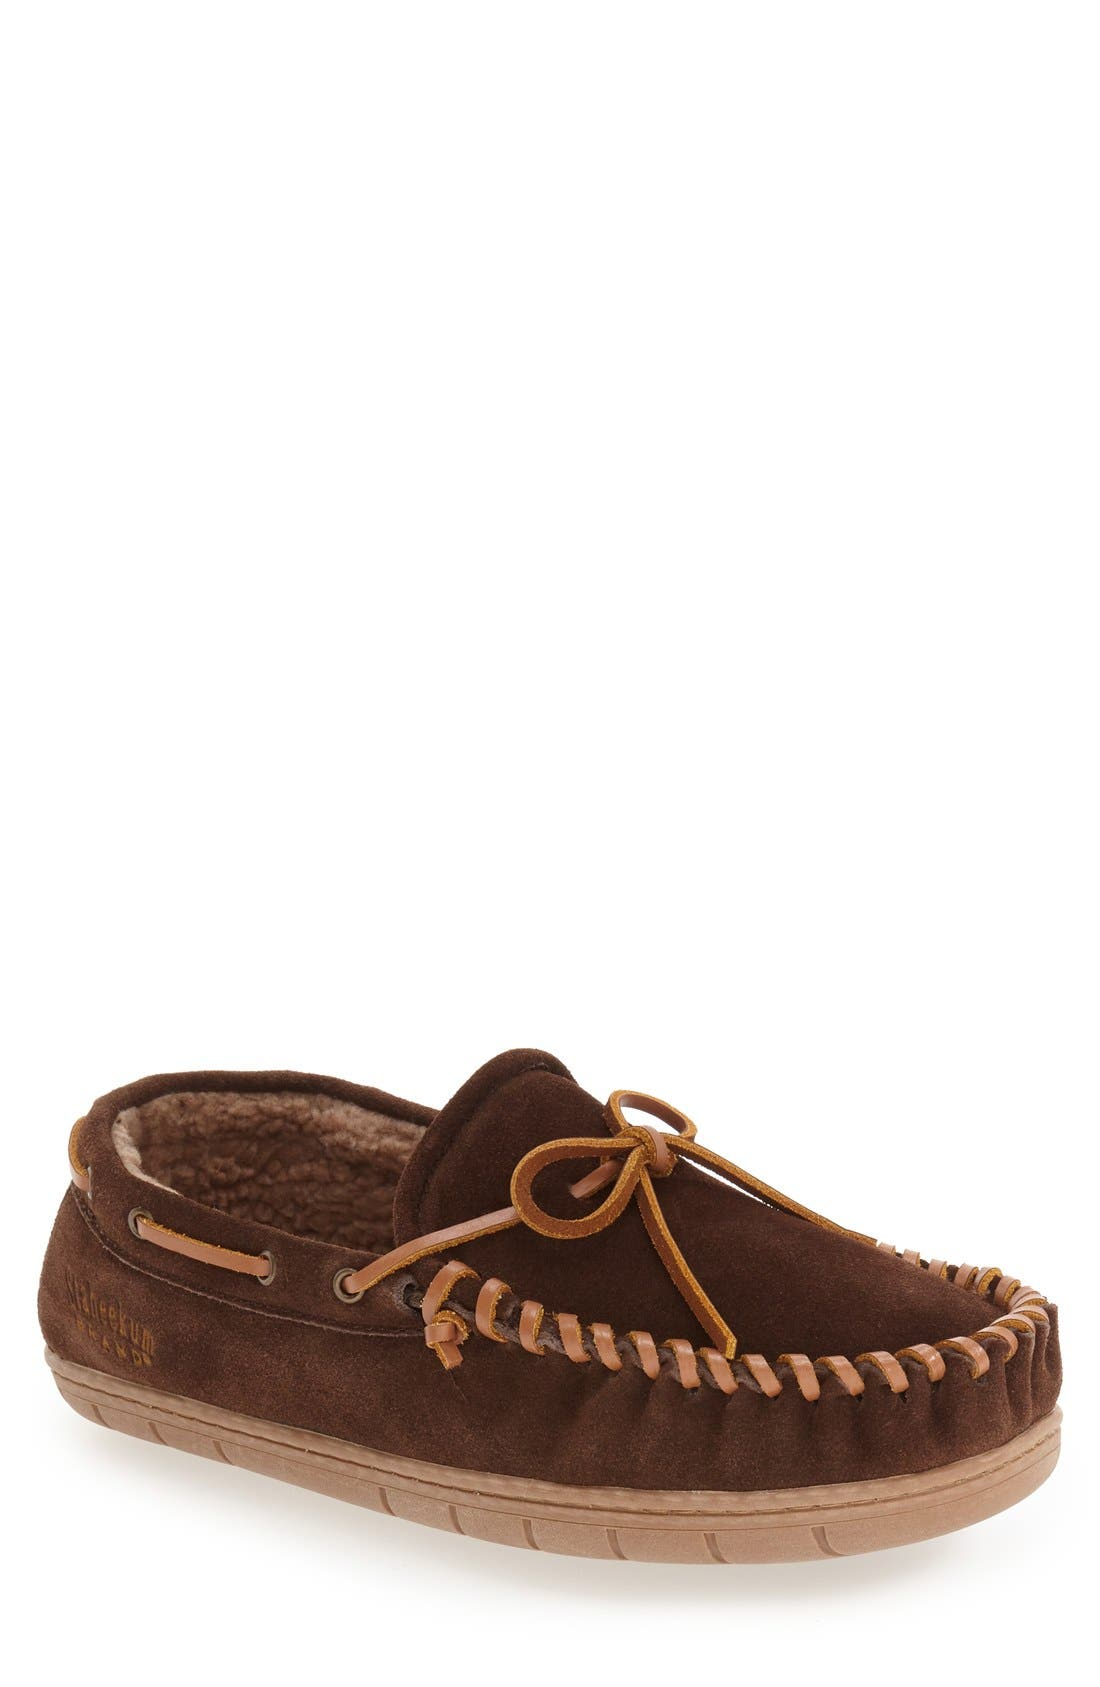 'Courier' Moccasin Slipper,                         Main,                         color, 203